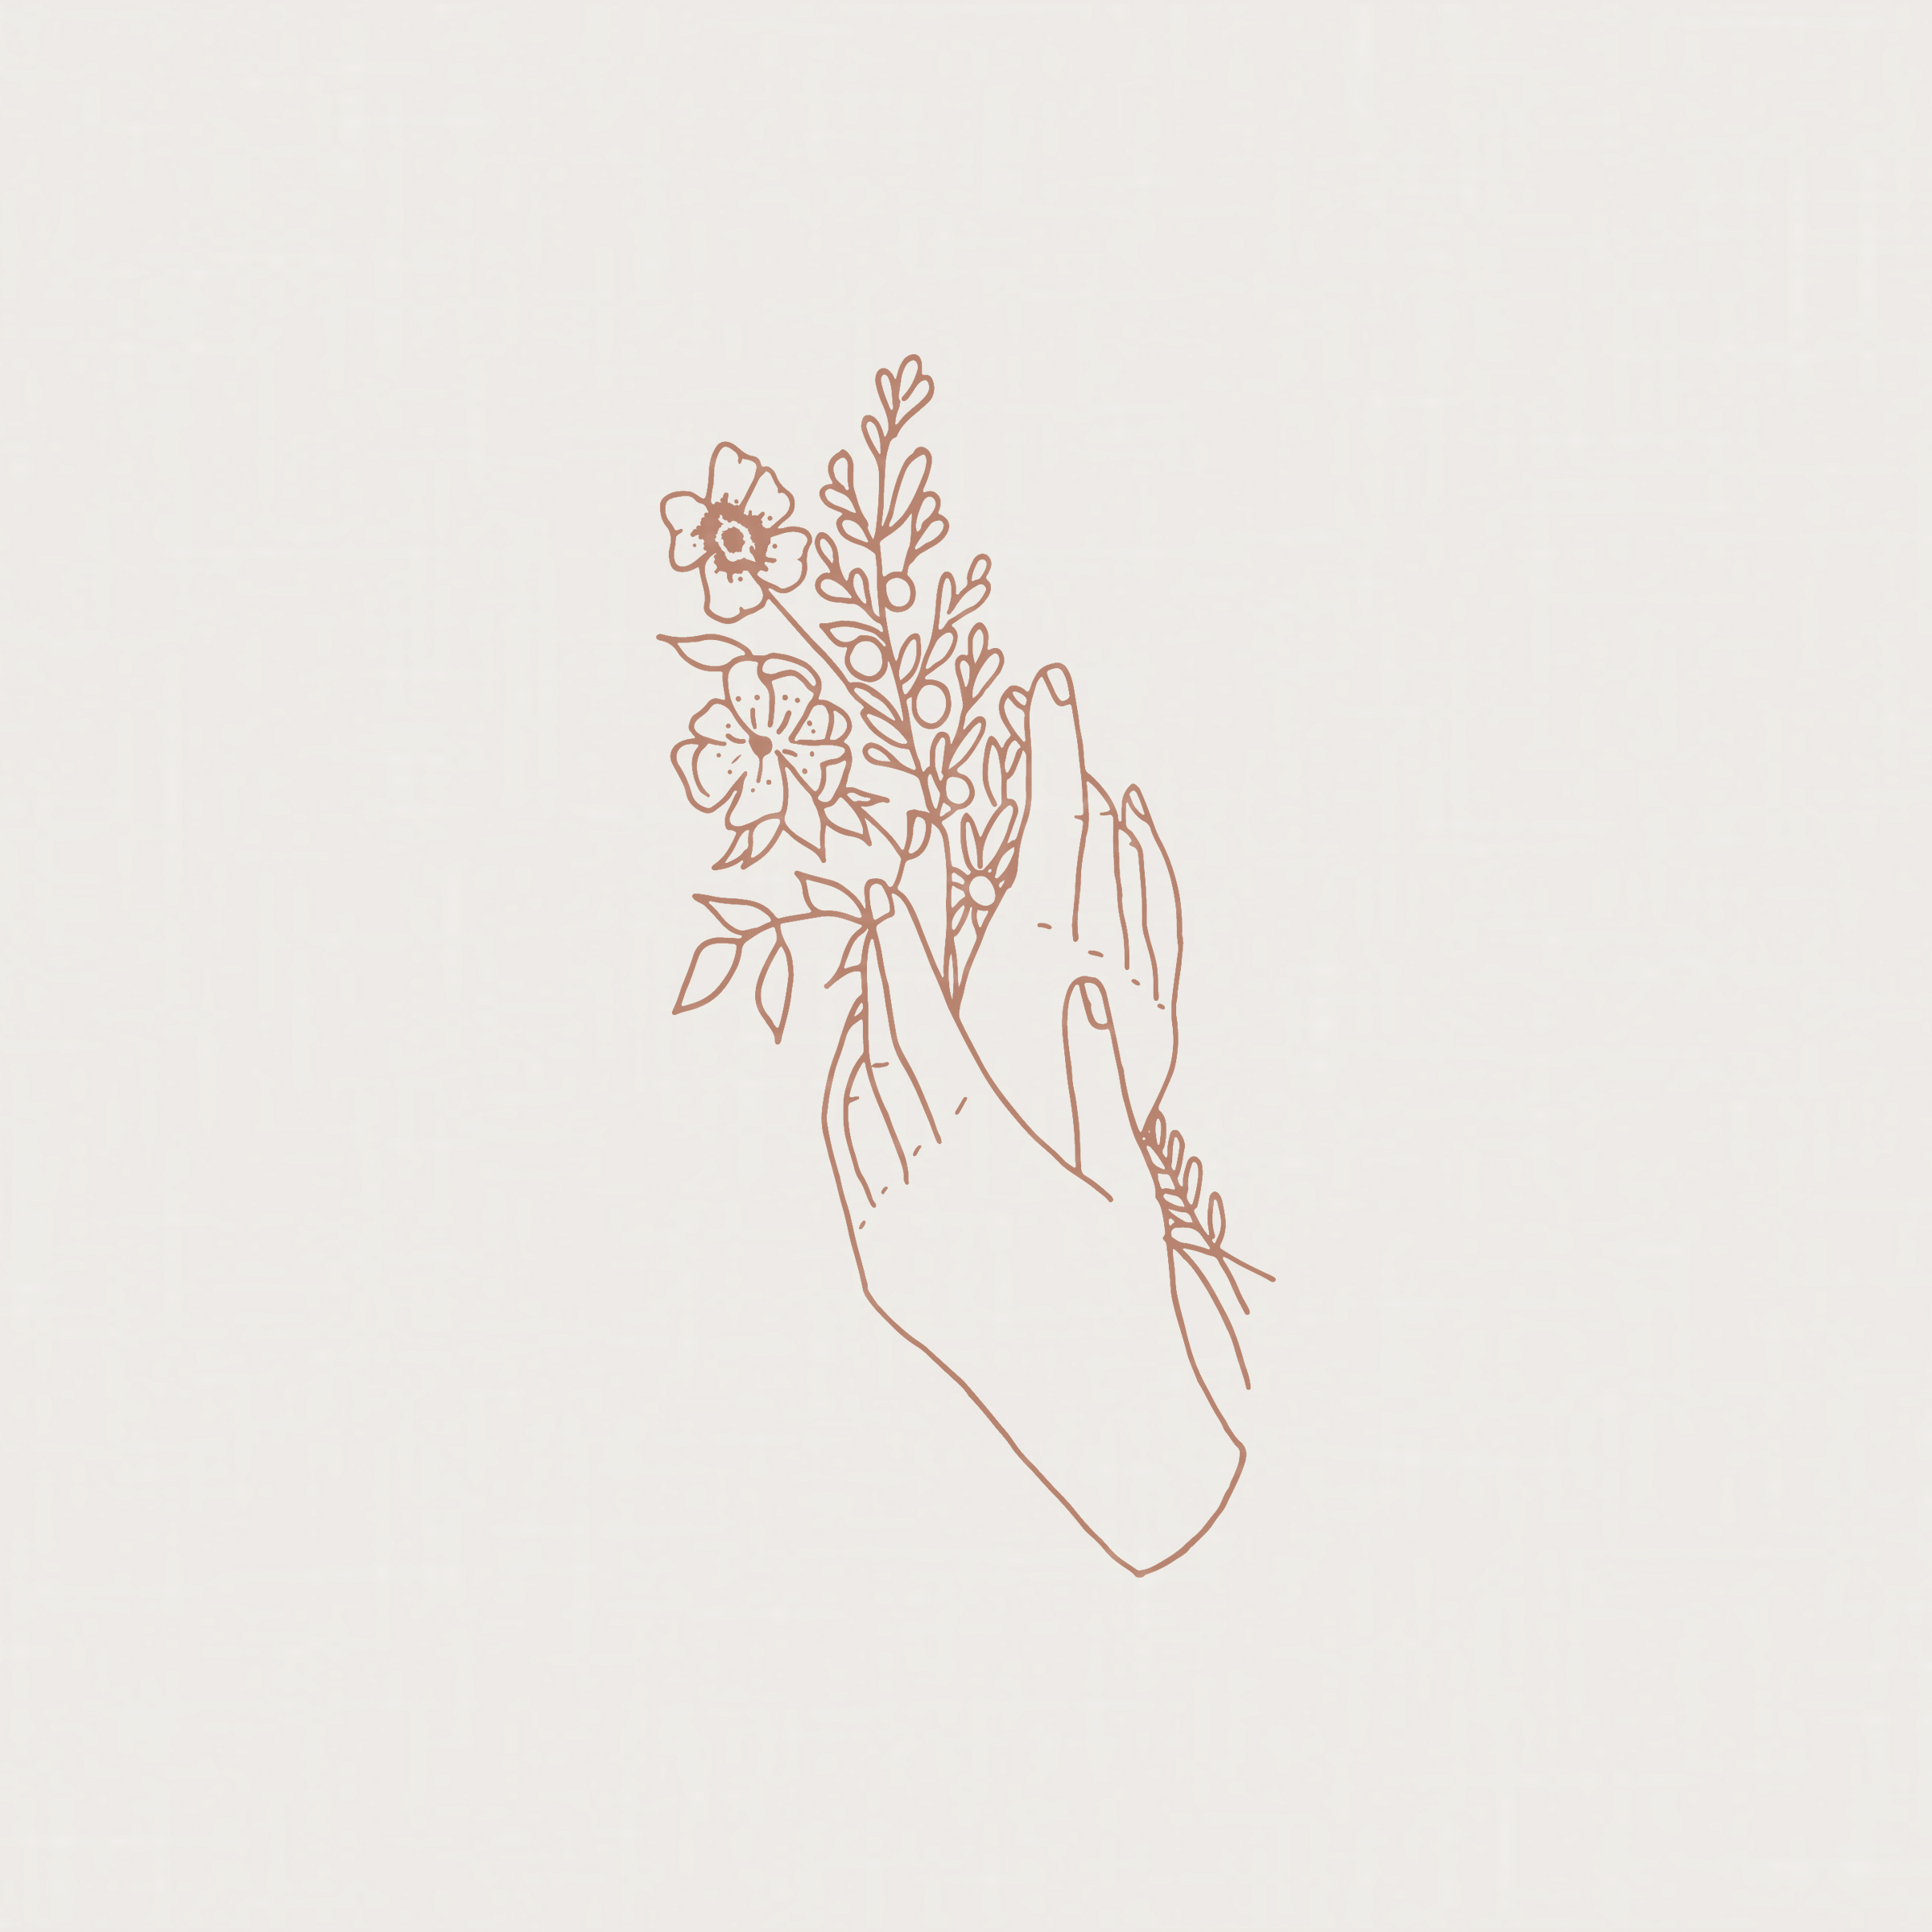 Morgan Parsons _ Hand & Flower illustration copy.jpg